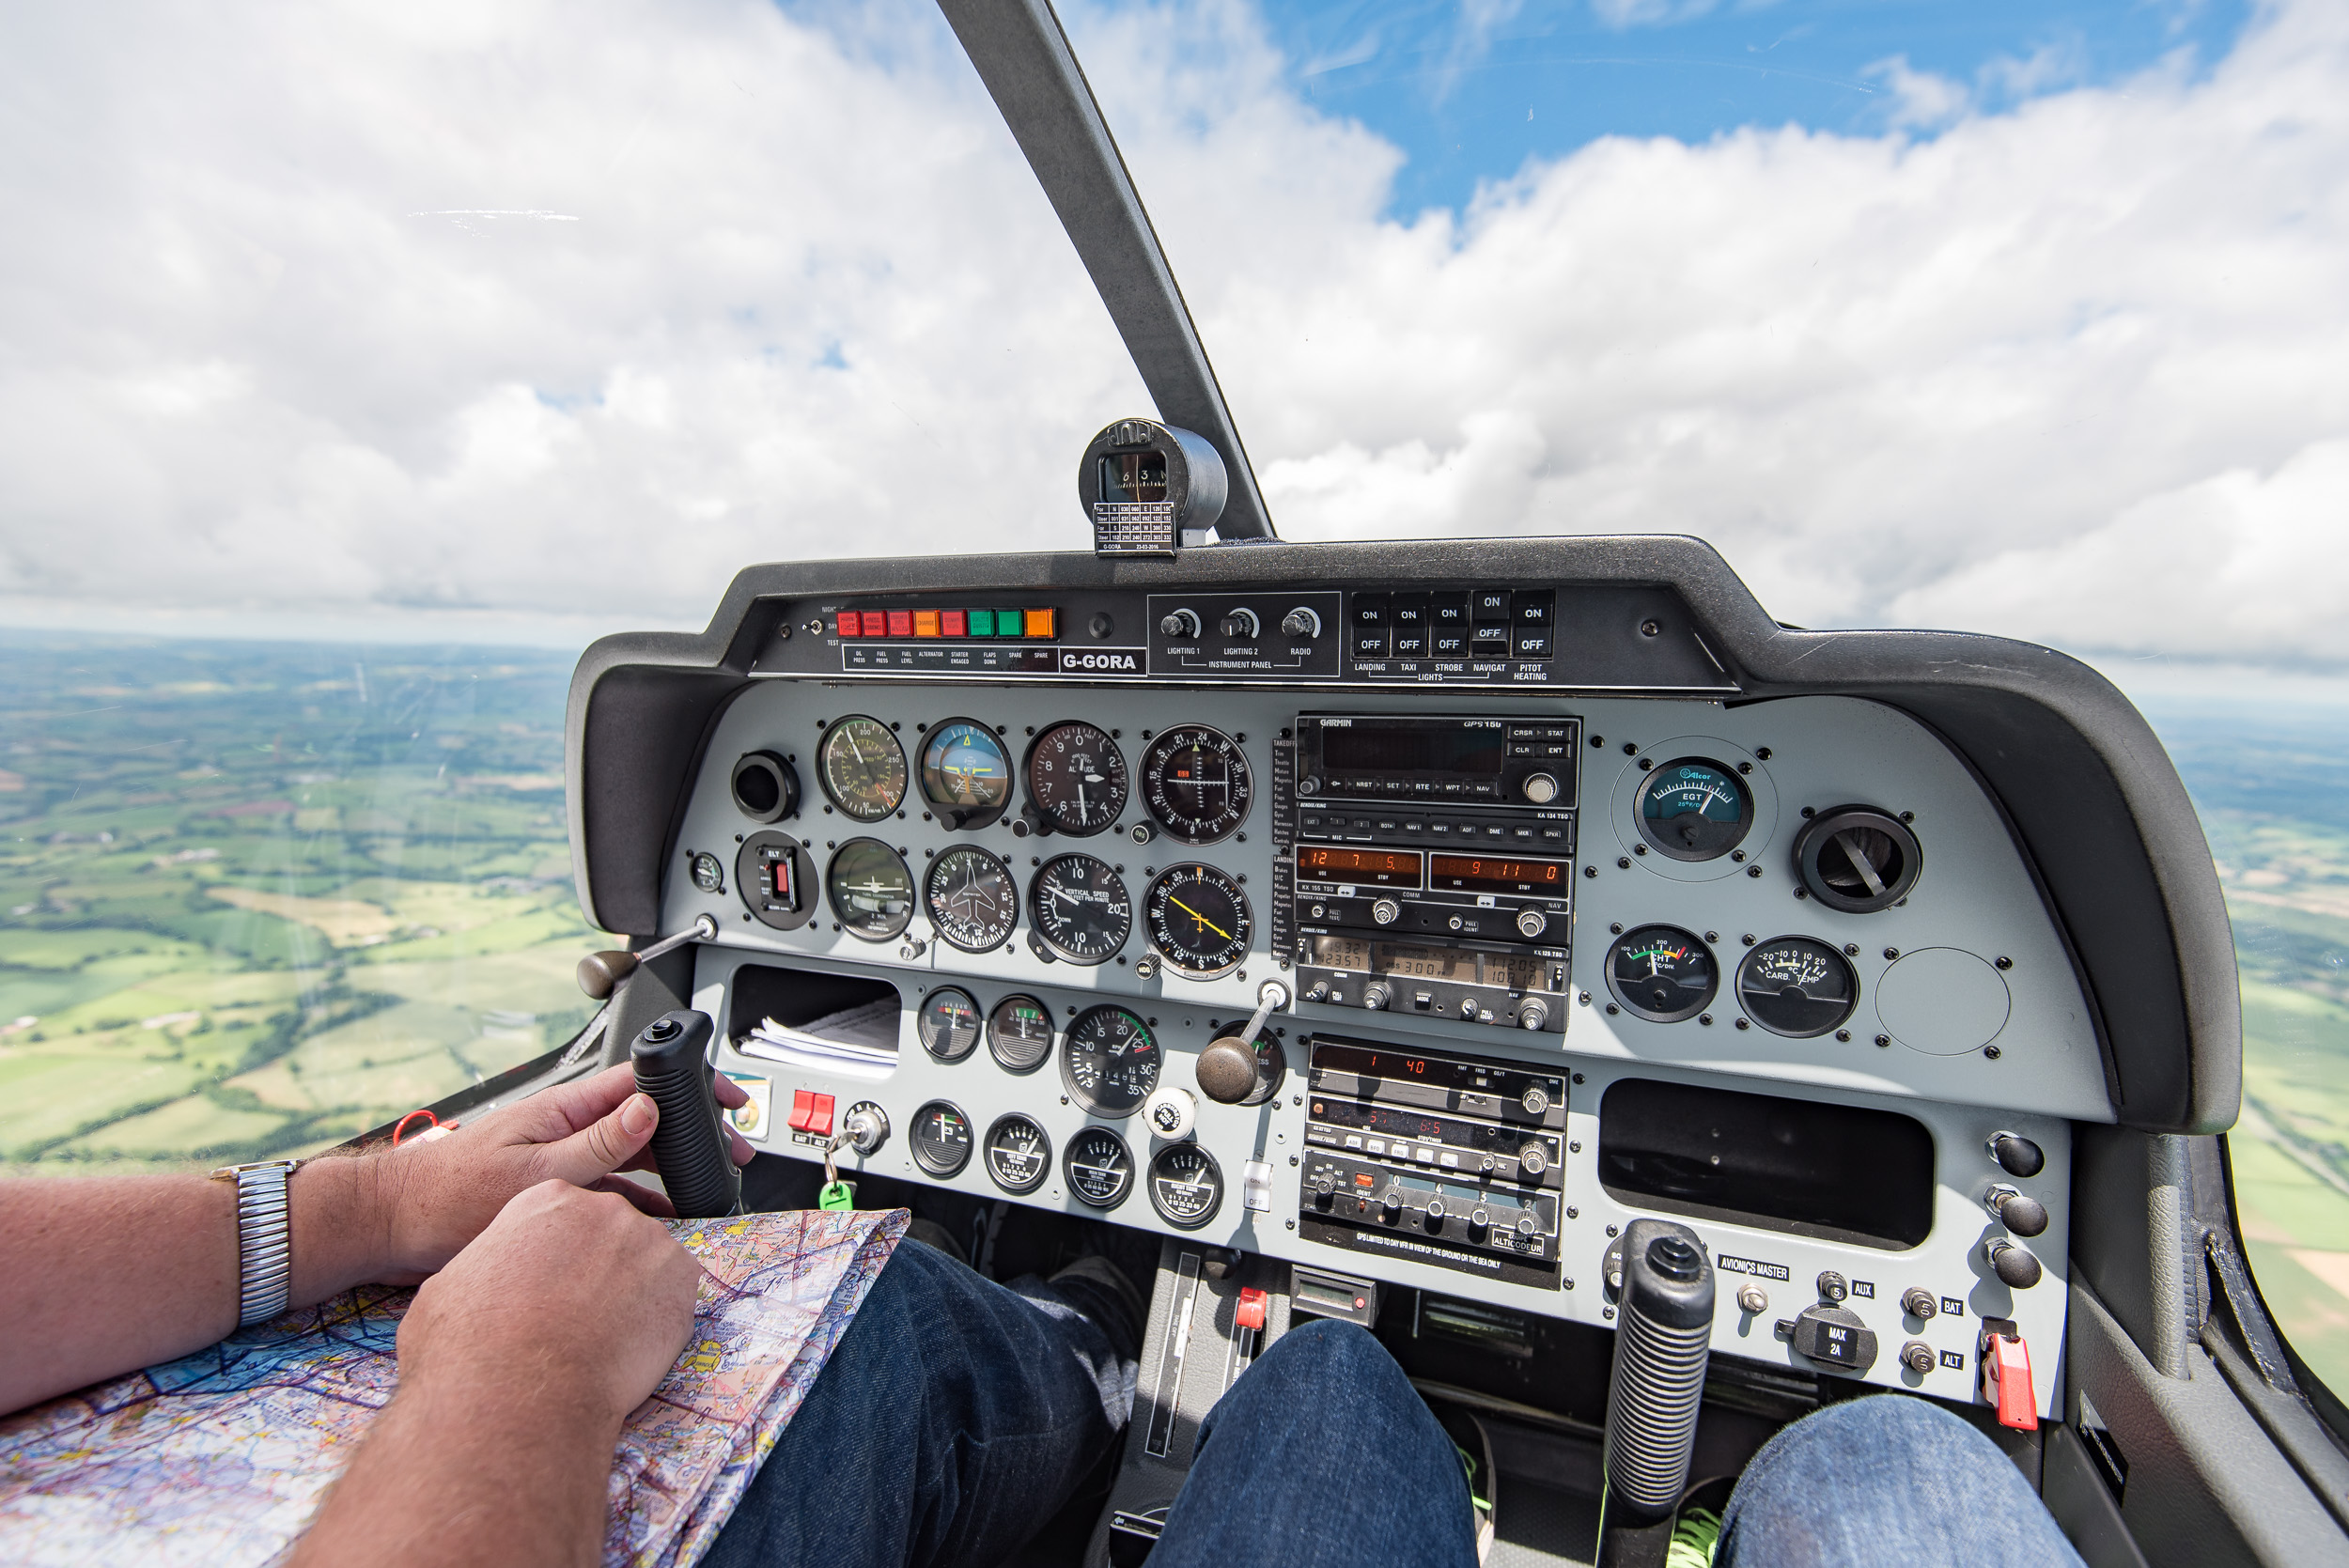 There is a lot manage as Pilot in Command, so it's best to leave the image taking to when you're a passenger.